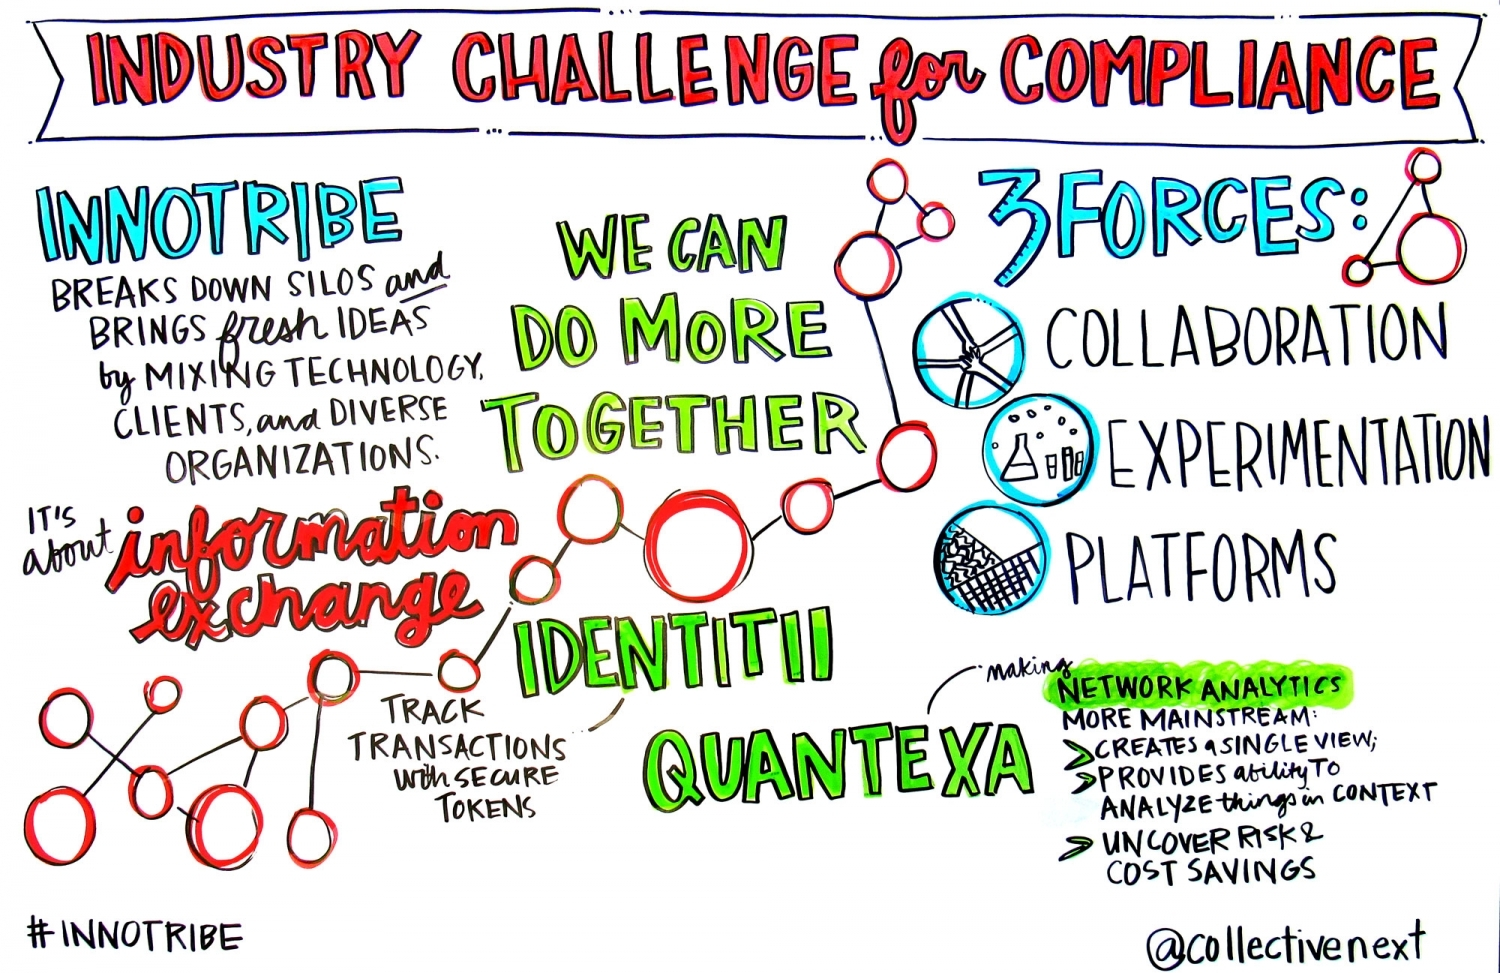 Industry Challenge for ComplianceGraphic Facilitation Scribing Innotribe Collective next